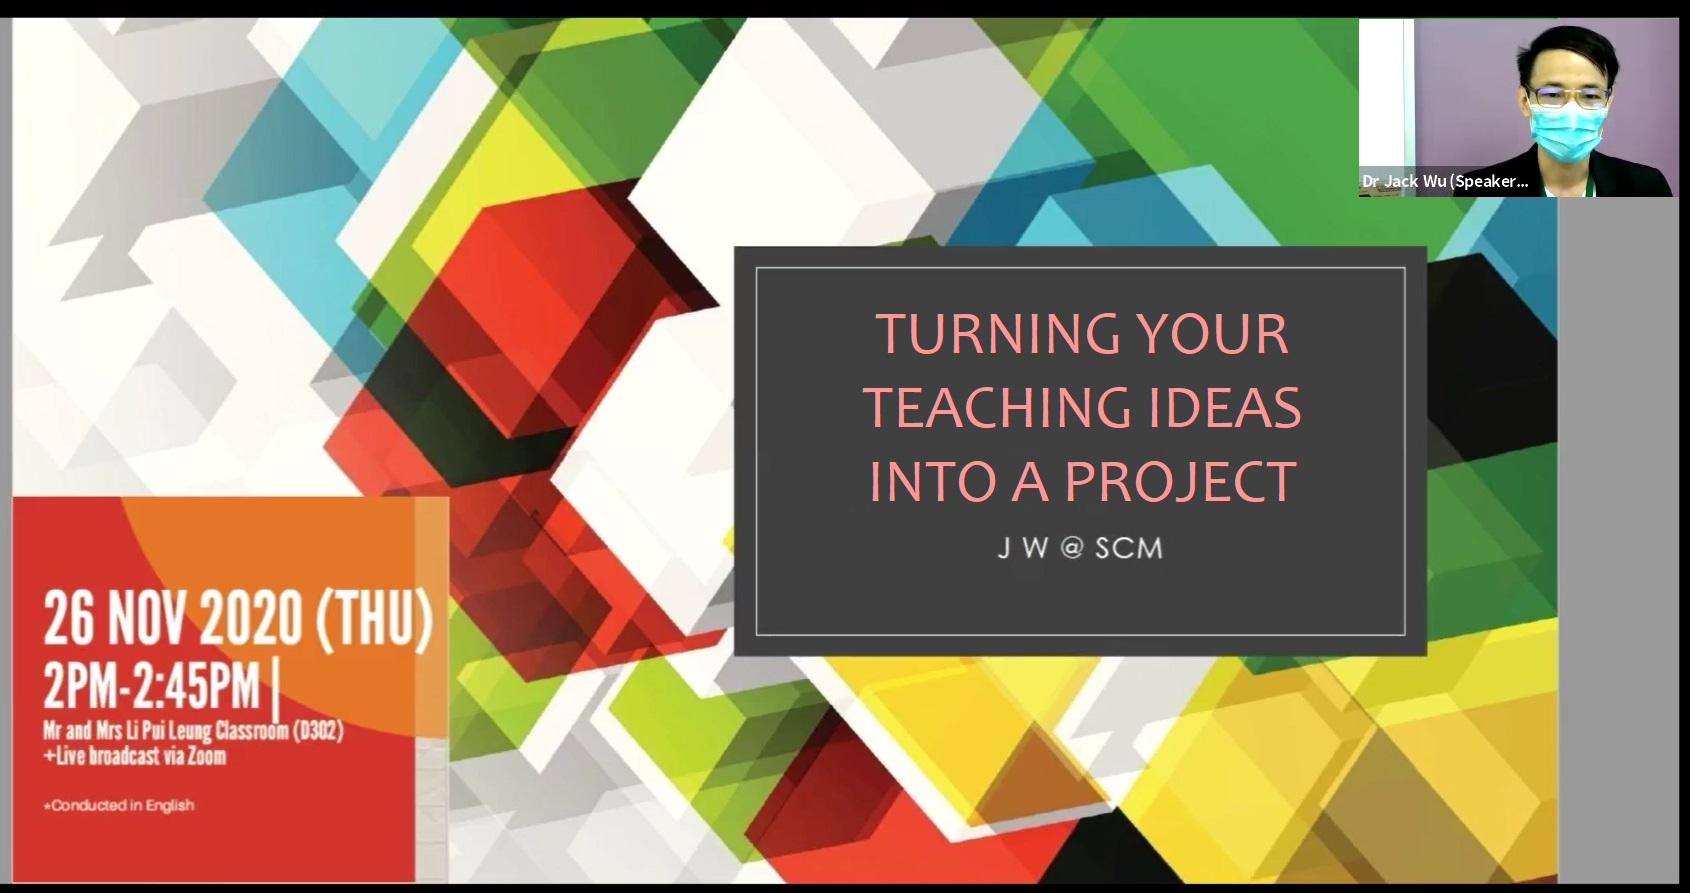 Dr Wu shares on 'Turning Your Teaching Ideas into a Project'.